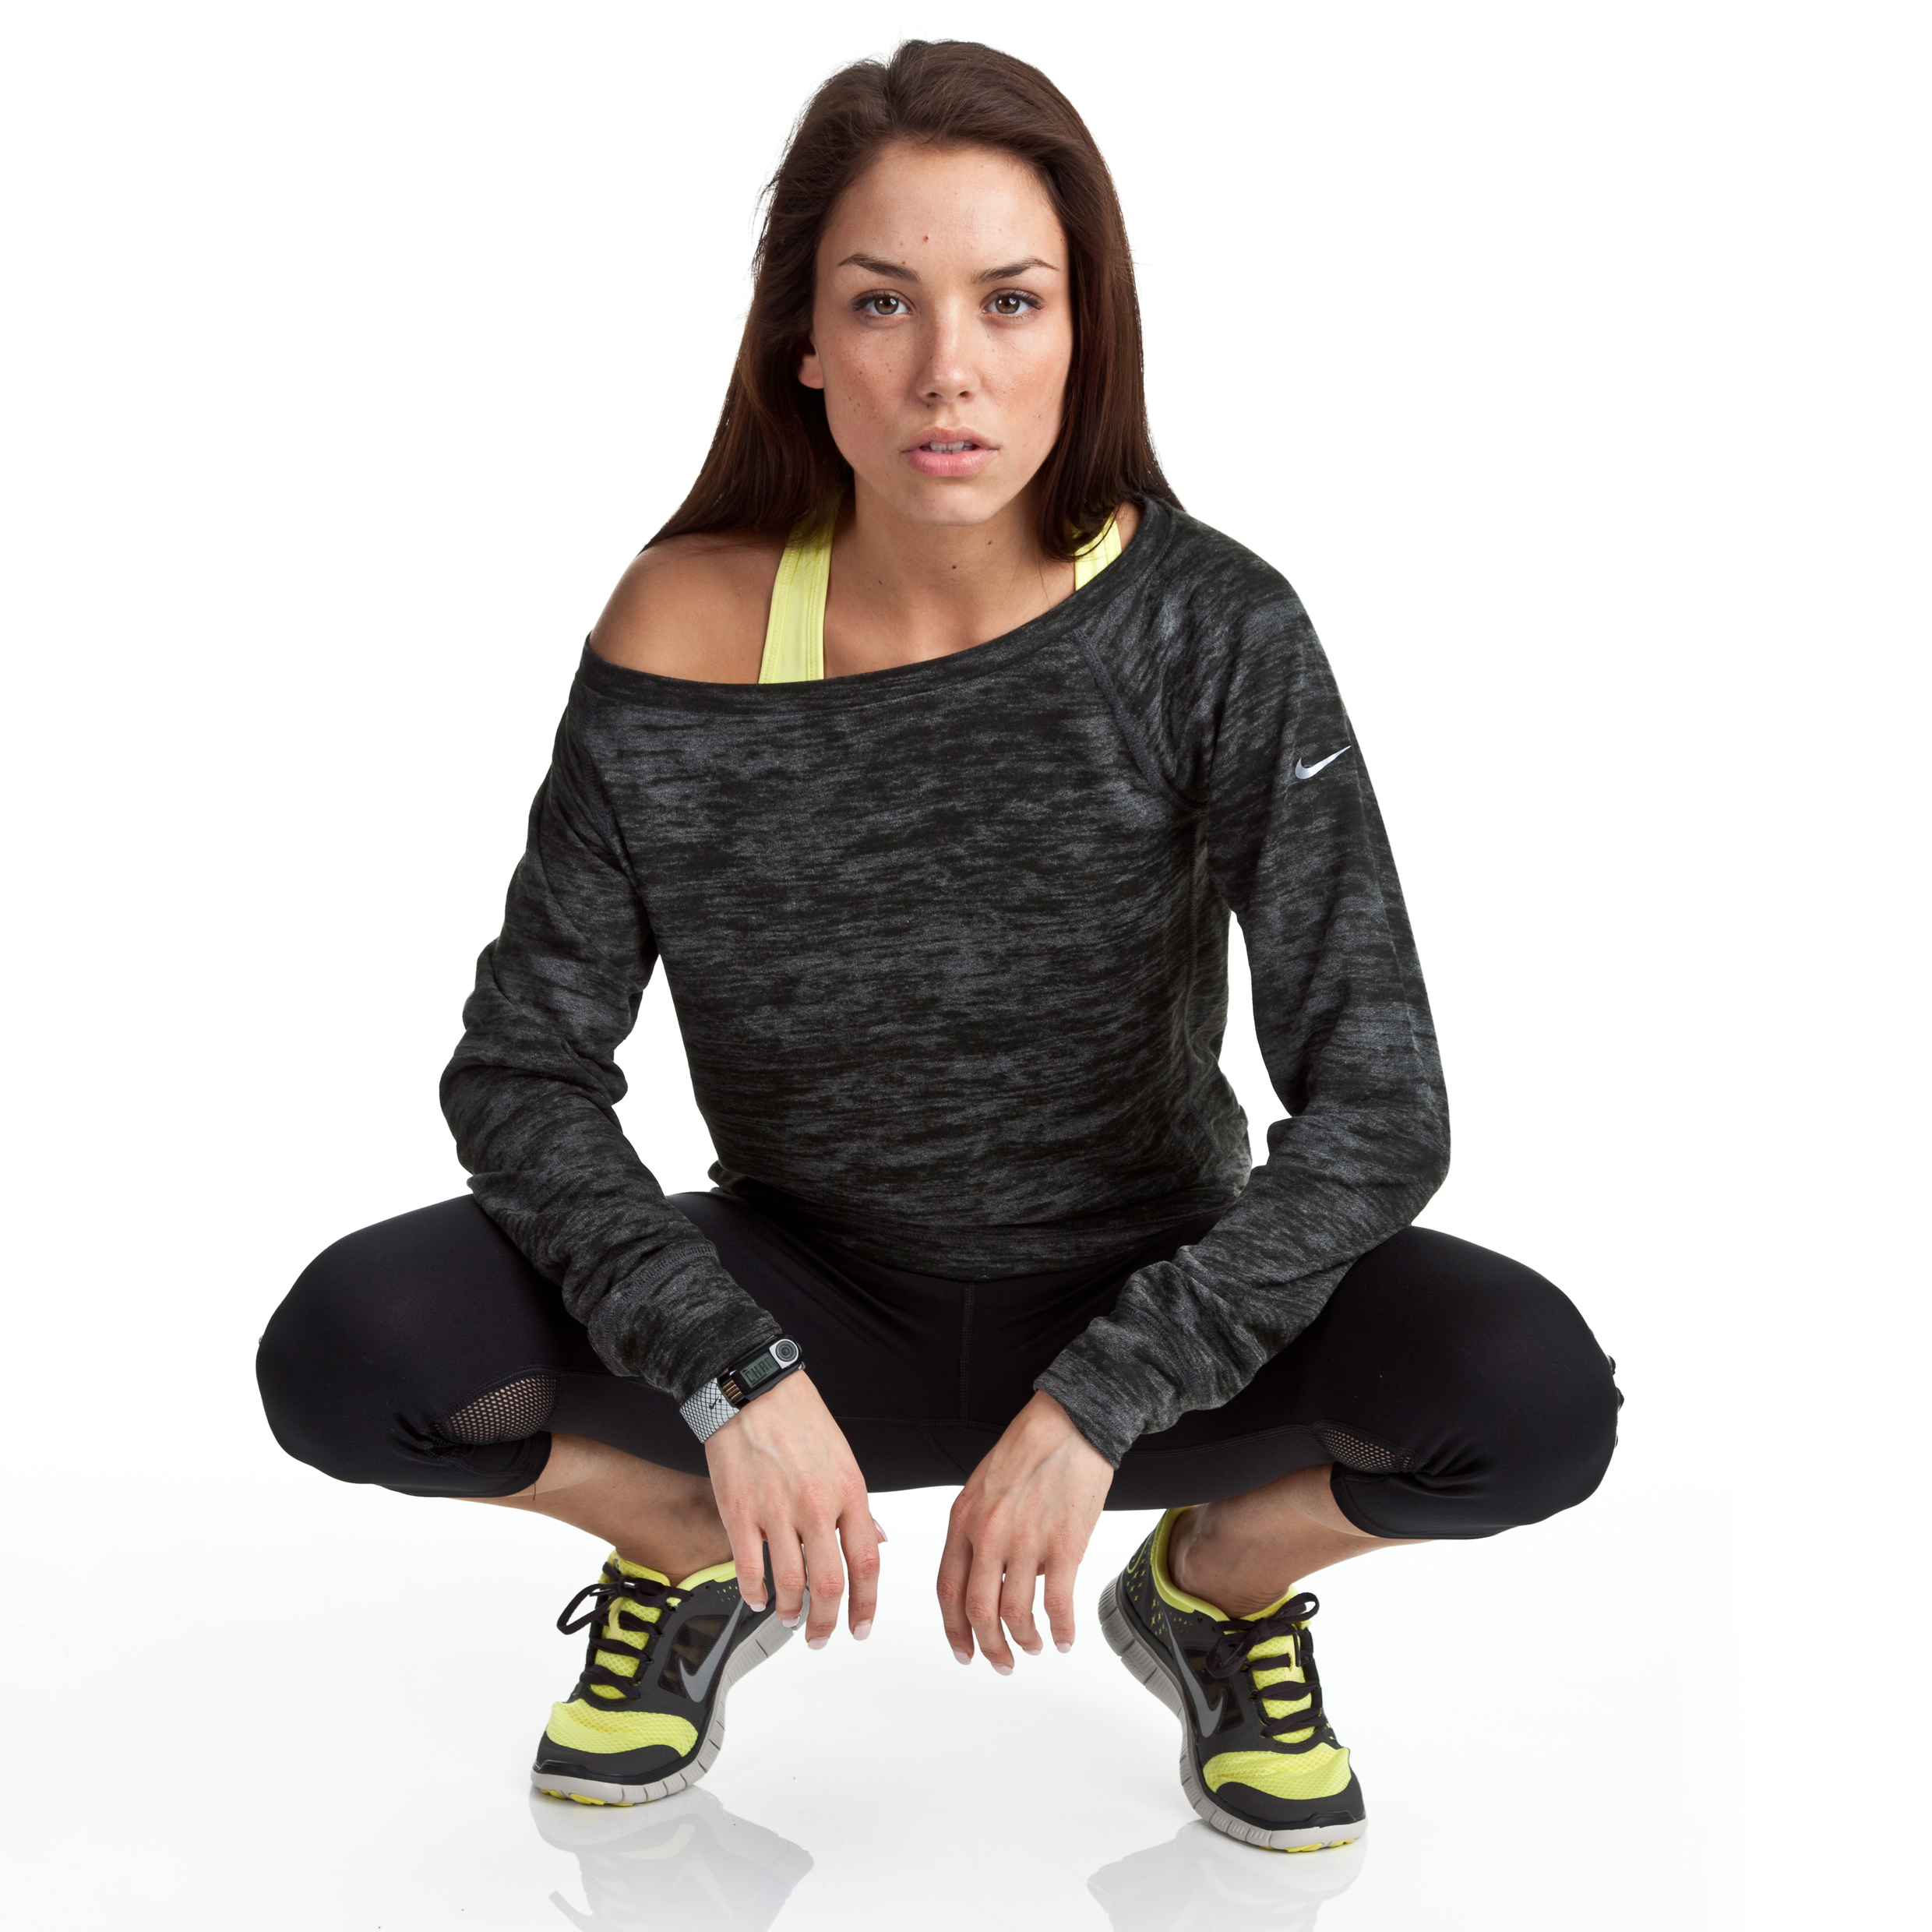 Nike Epic Crew 2.0 - Anthracite/Anthracite - Womens